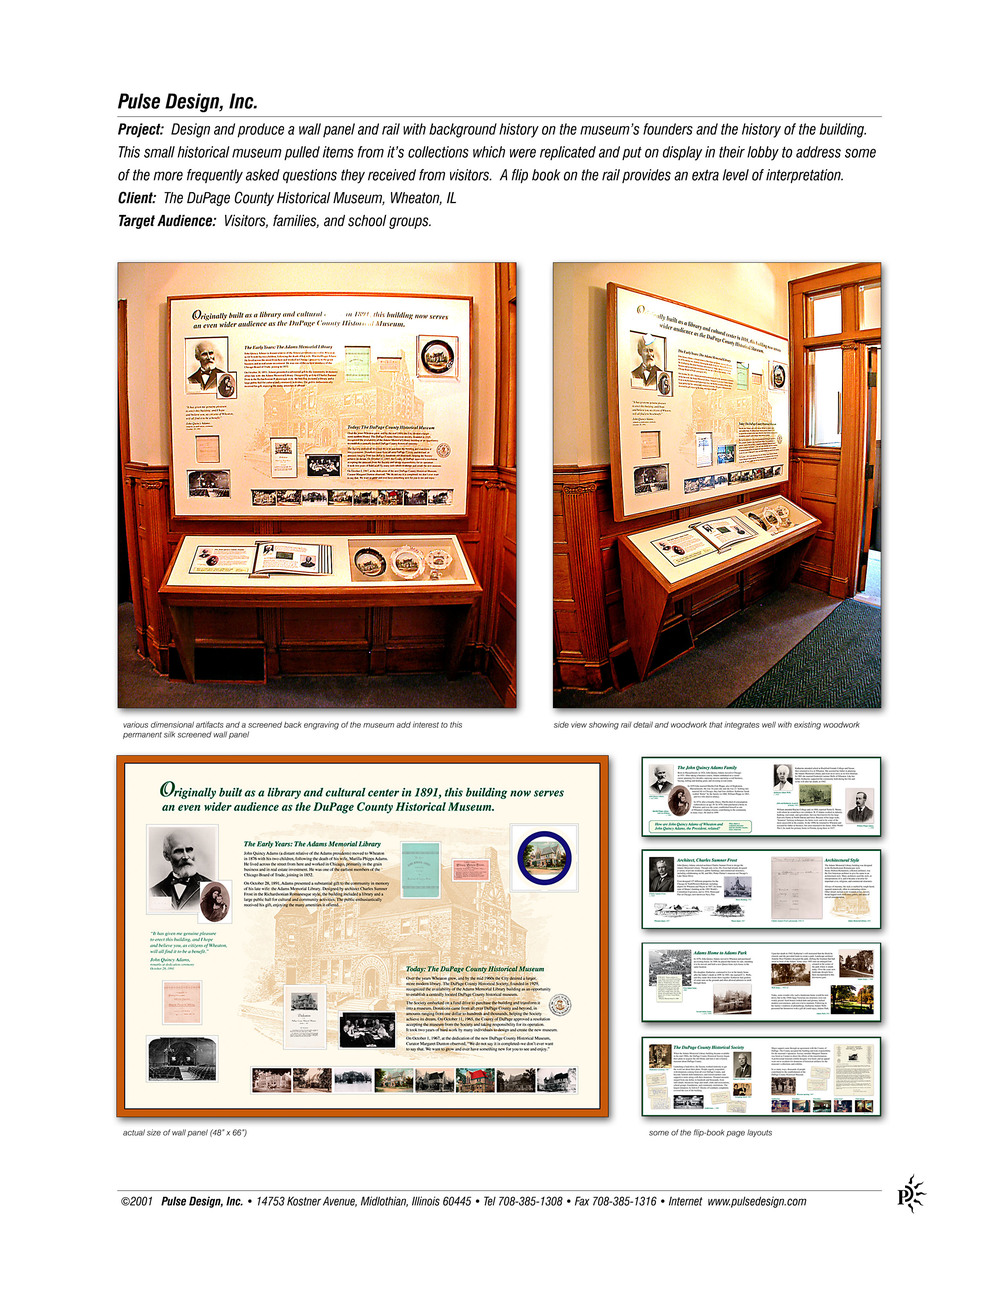 Dupage-History-Exhibit-Pulse-Design-Inc.jpg